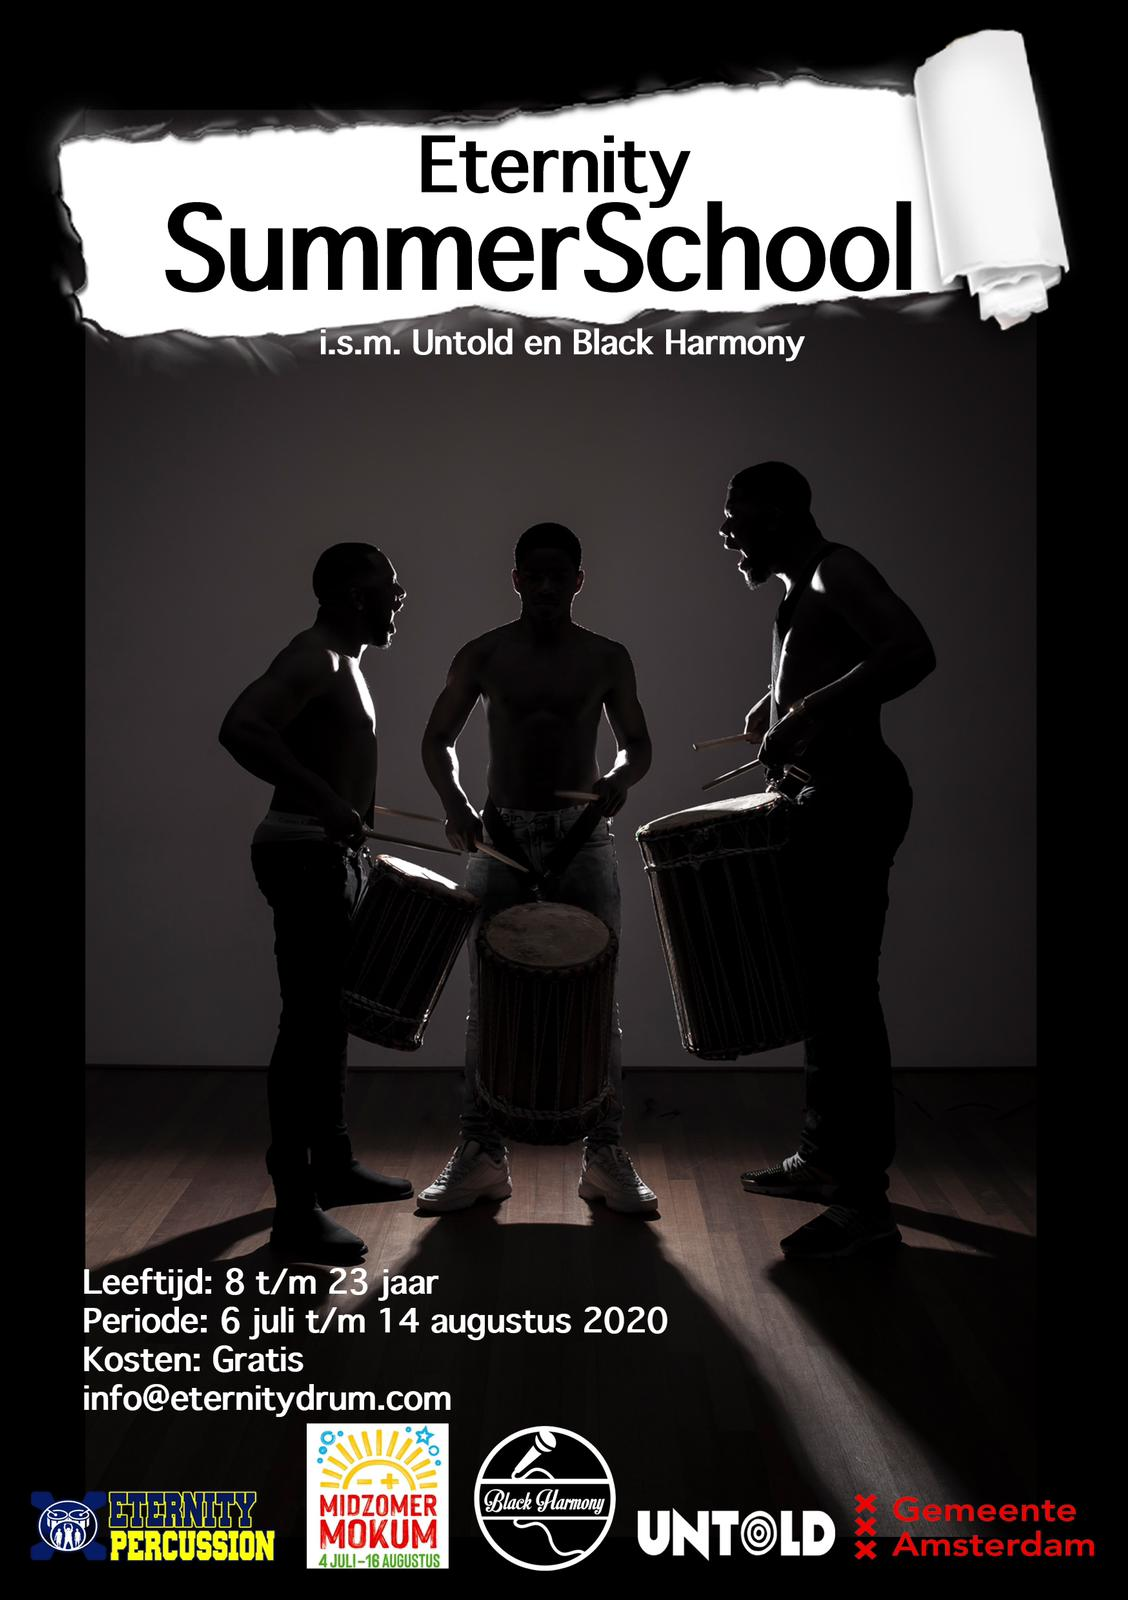 Eternity Summerschool